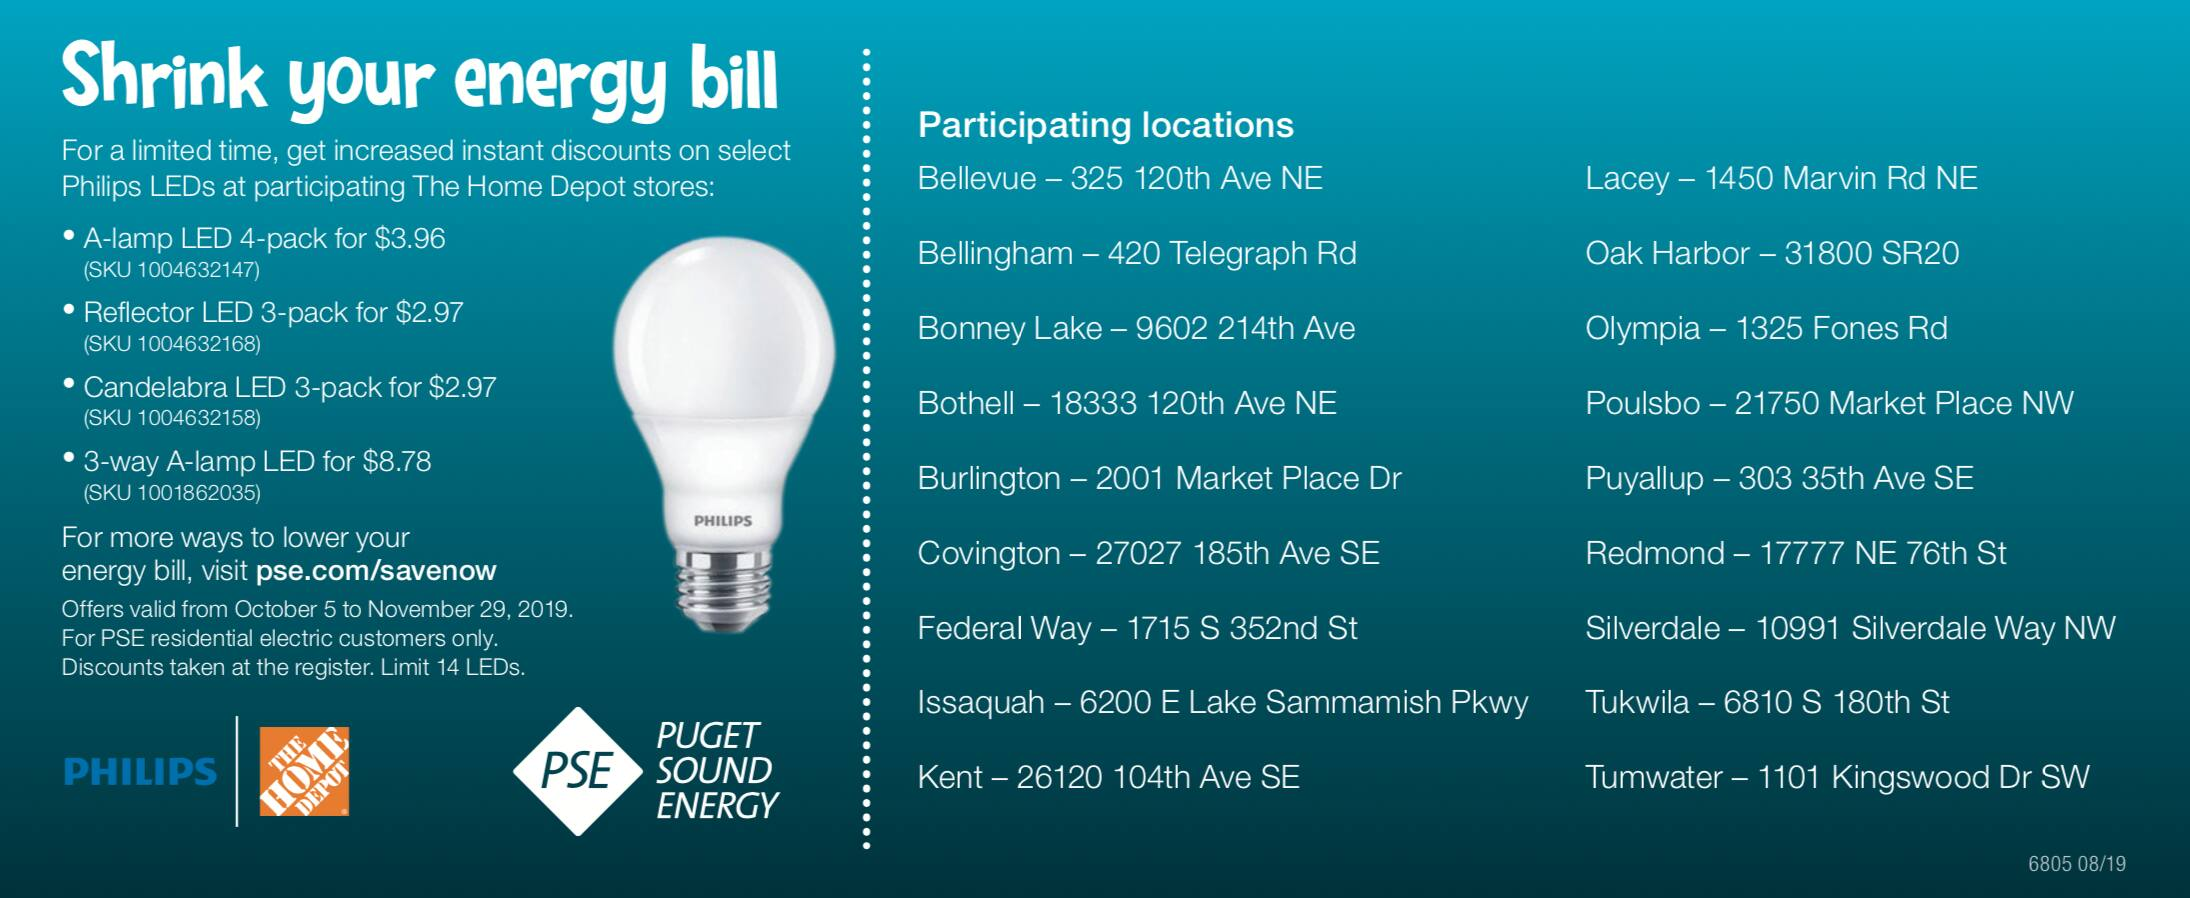 Philips LEDs for as low as 99 cents per bulb (WA state customers) Home depot stores